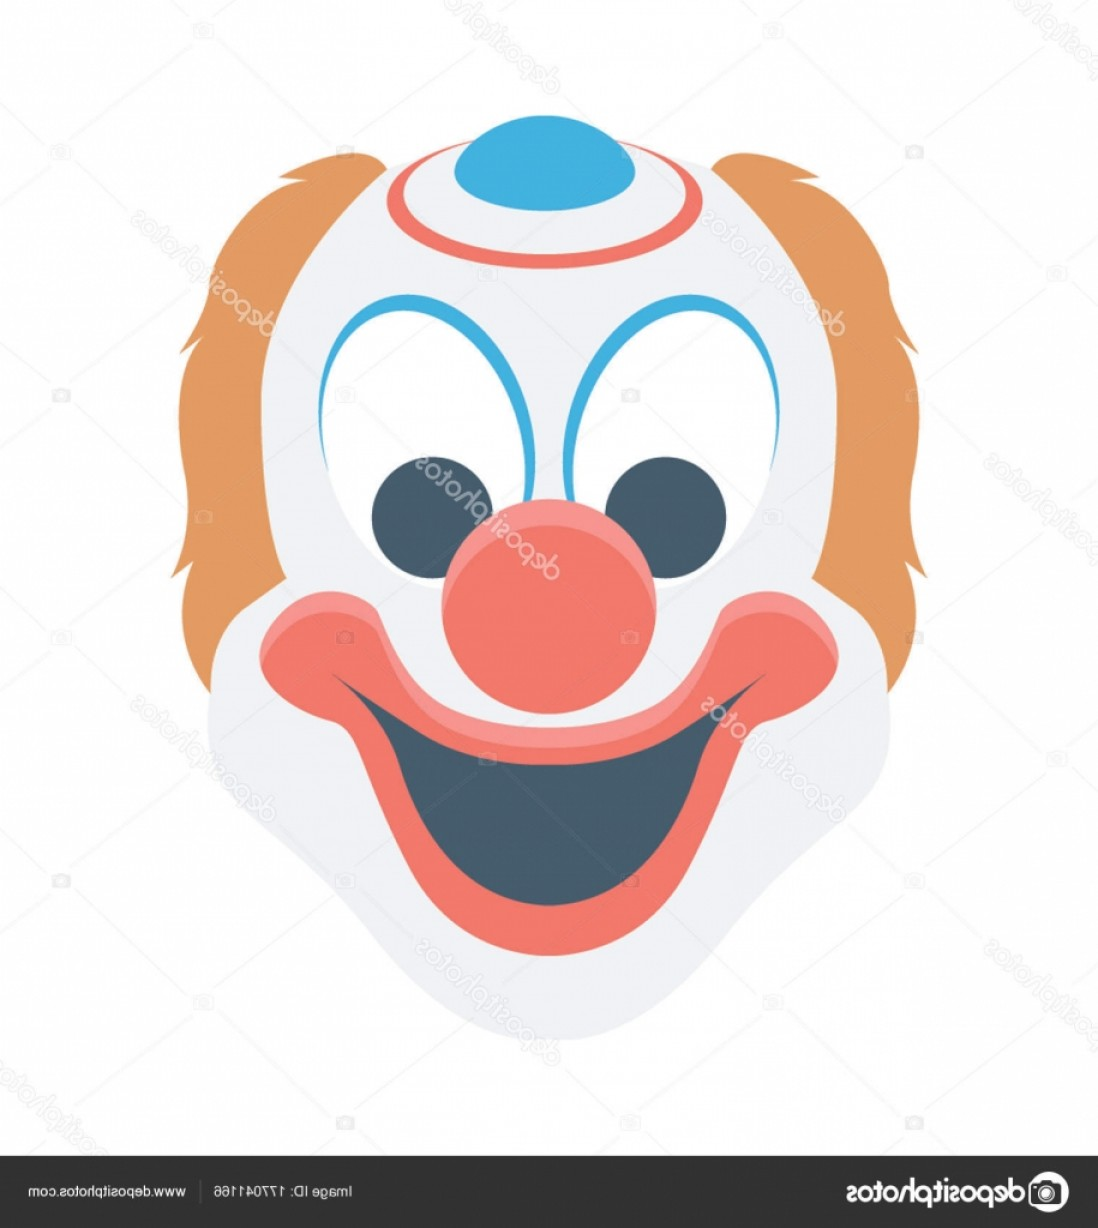 Joker Smile Vector Art: Stock Illustration Joker Face Vector Icon